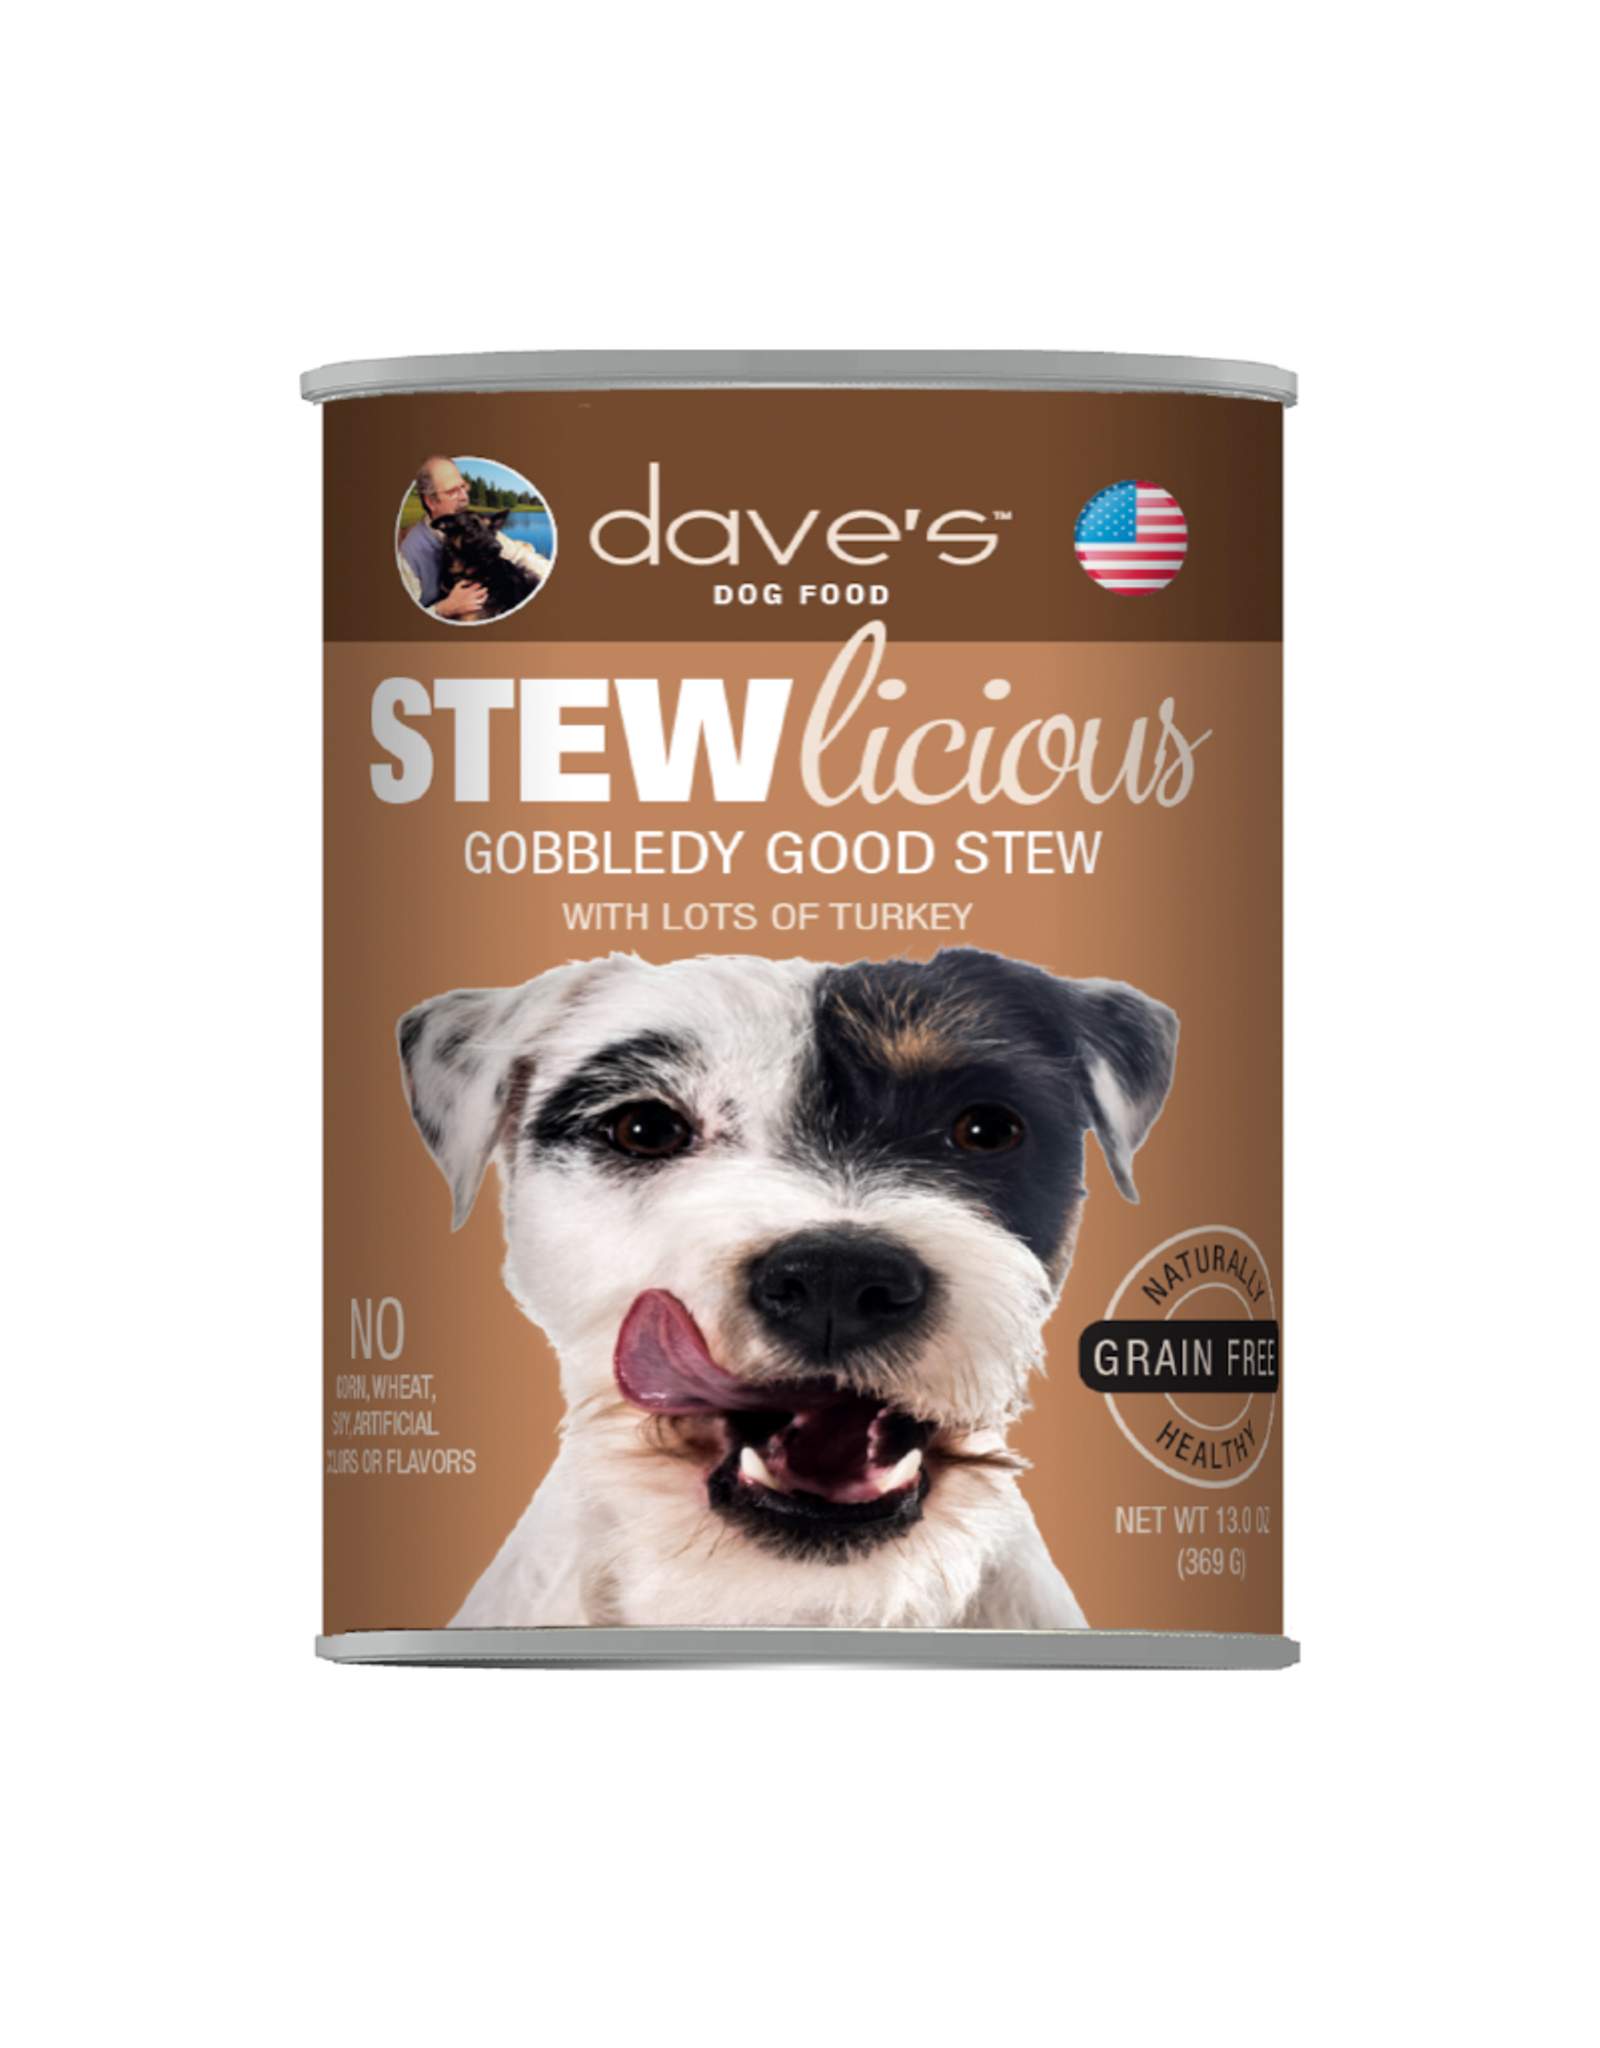 DAVE'S PET FOOD Dave's | Stewlicious Gobbledy Good Stew Canned Dog Food 13.2oz